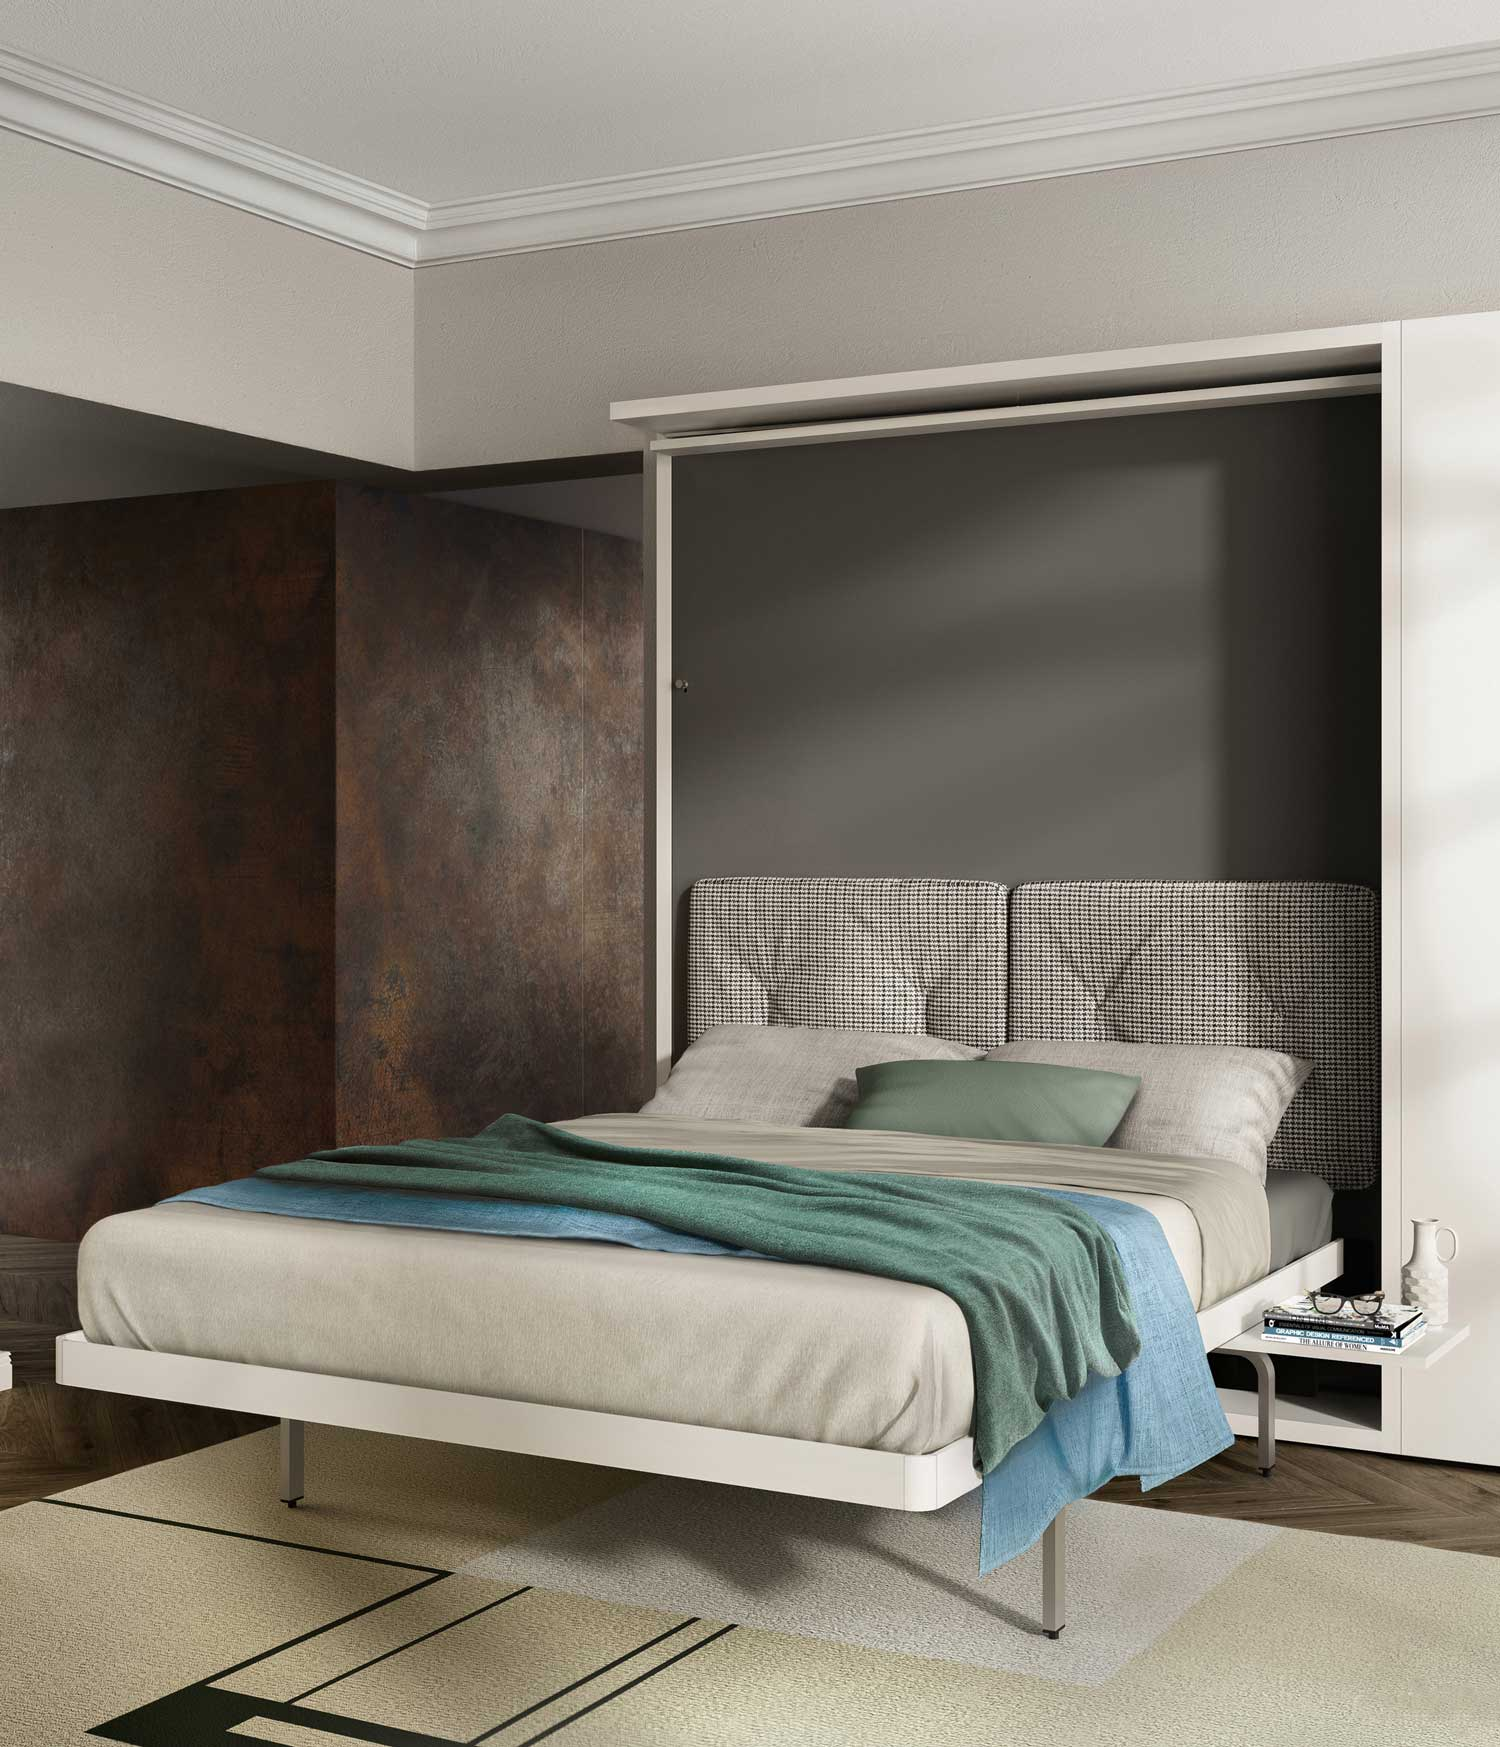 Clei LGM Murphy bed